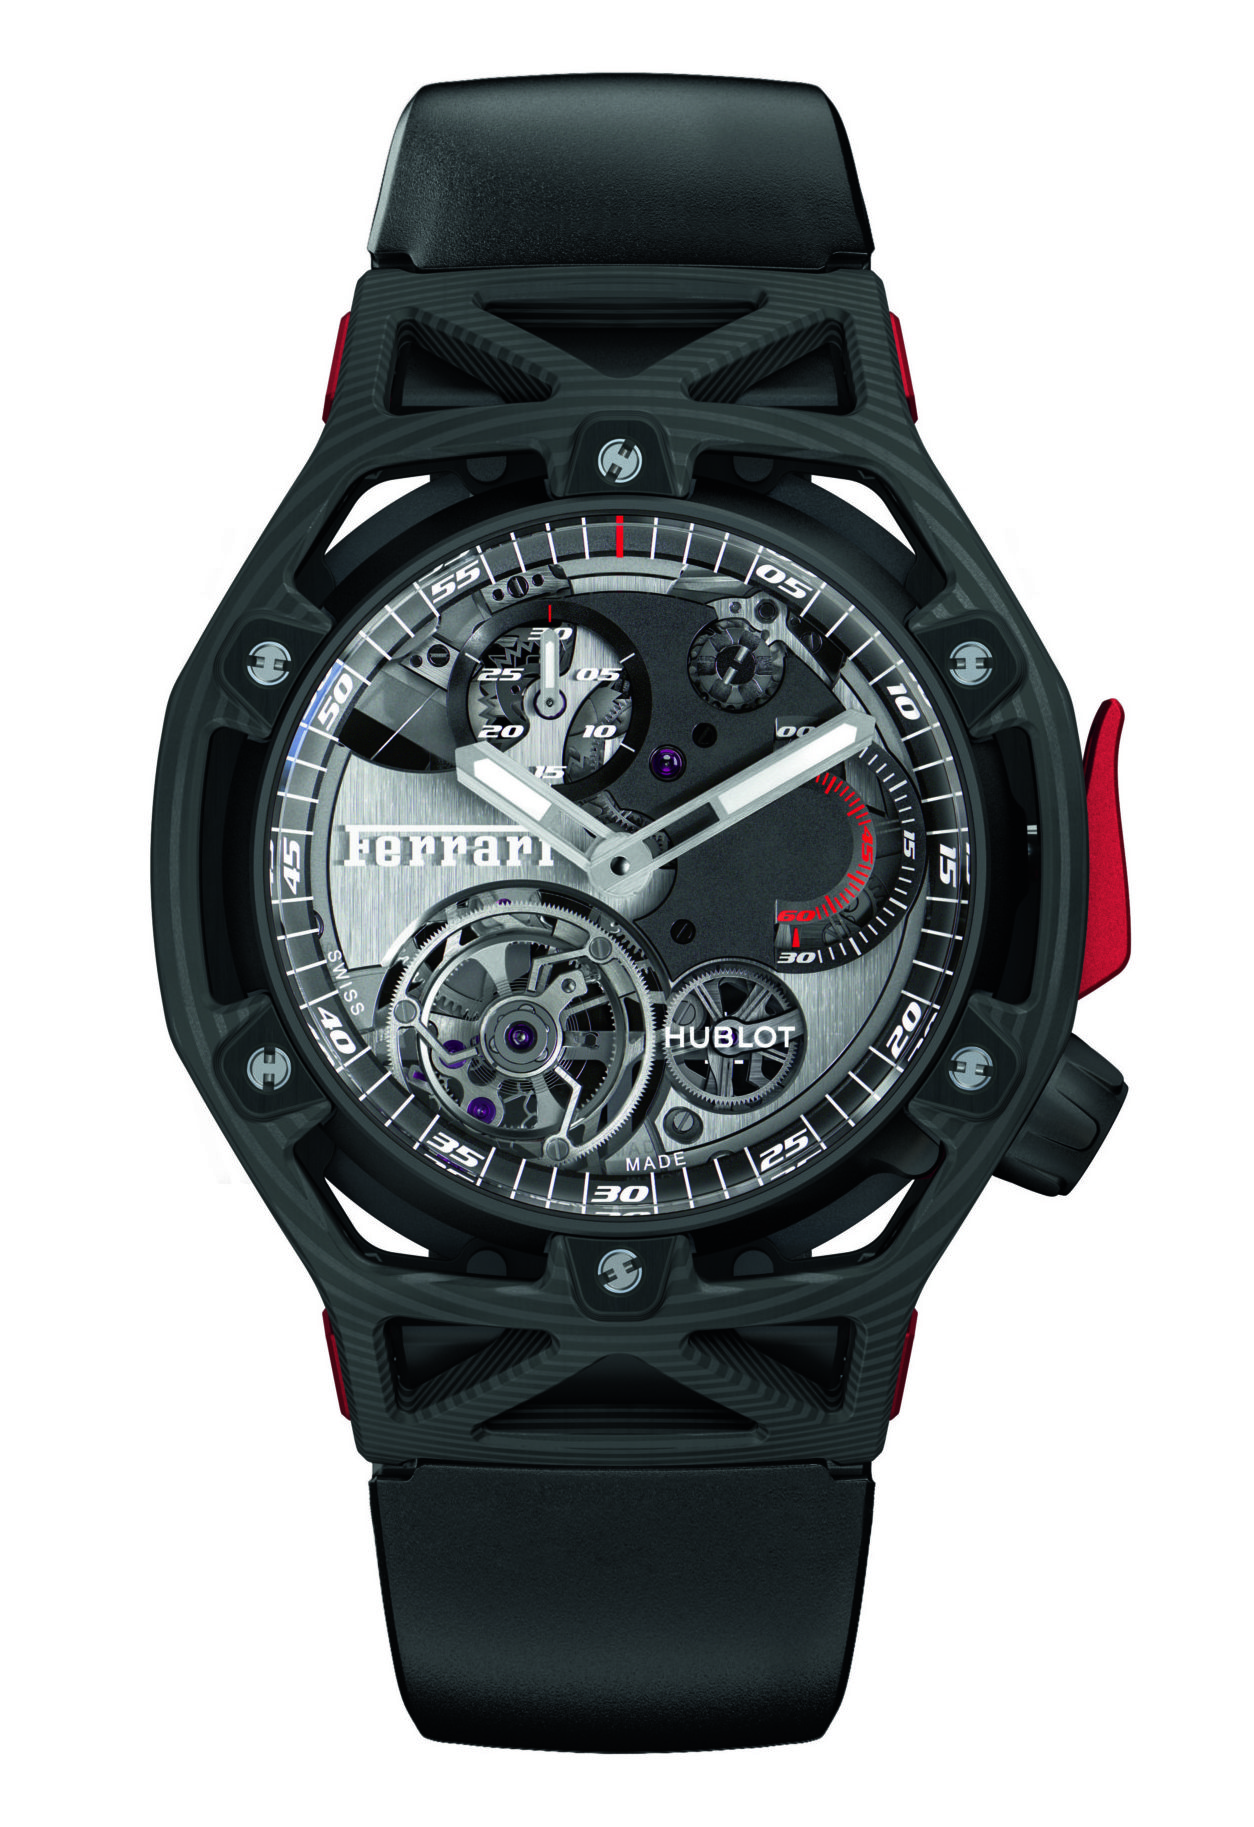 Hublot Ferrari Techframe